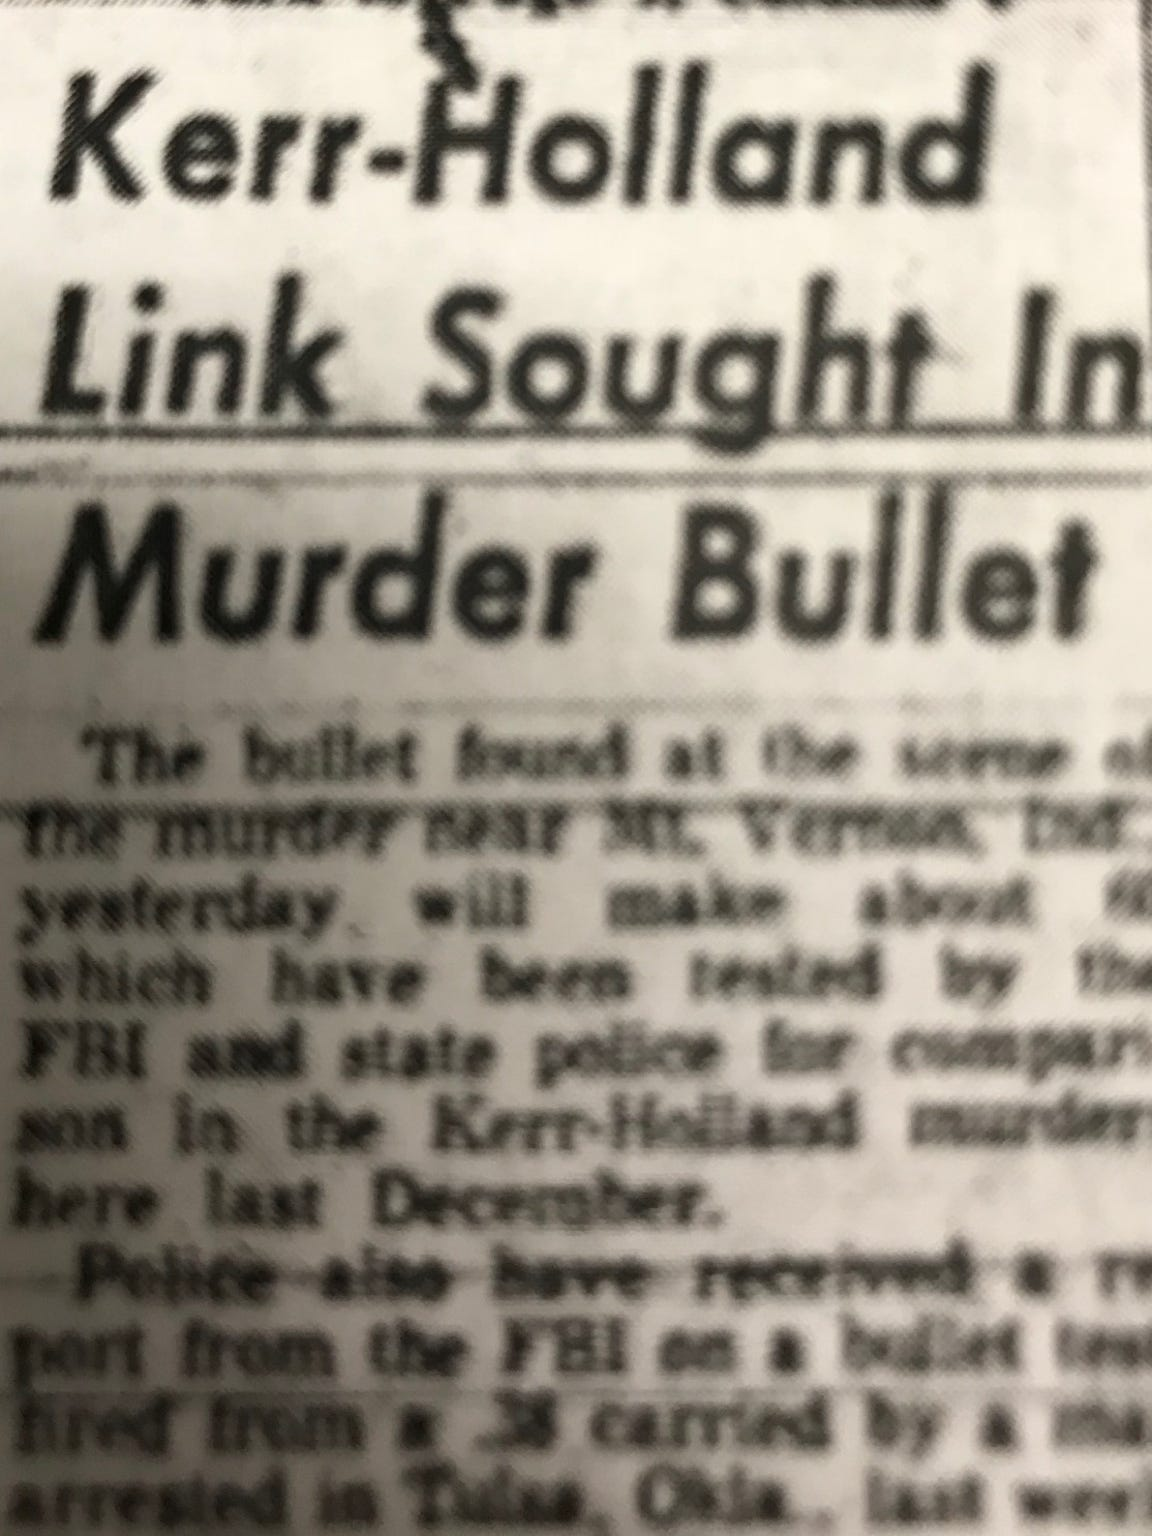 A headline in the March 22, 1955 edition of the Evansville Press. The story describes possible links between the murders of Wilhelmina Sailer, Wesley Kerr and Mary Holland.